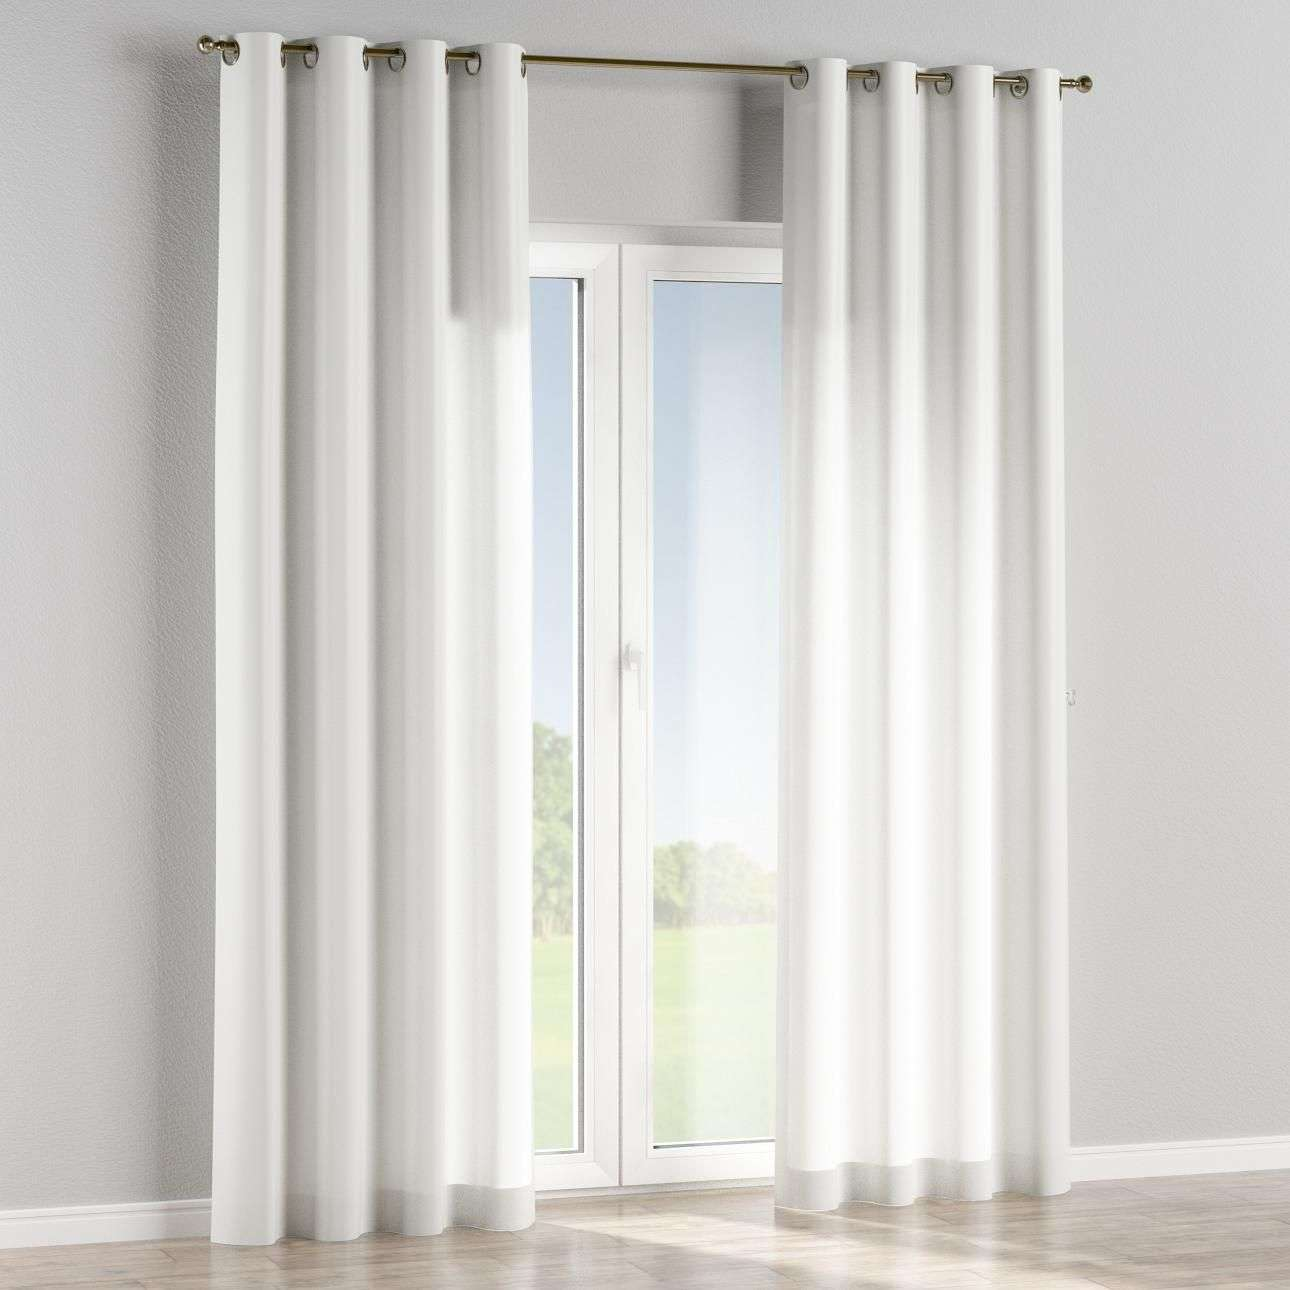 Eyelet lined curtains in collection Norge, fabric: 150-19